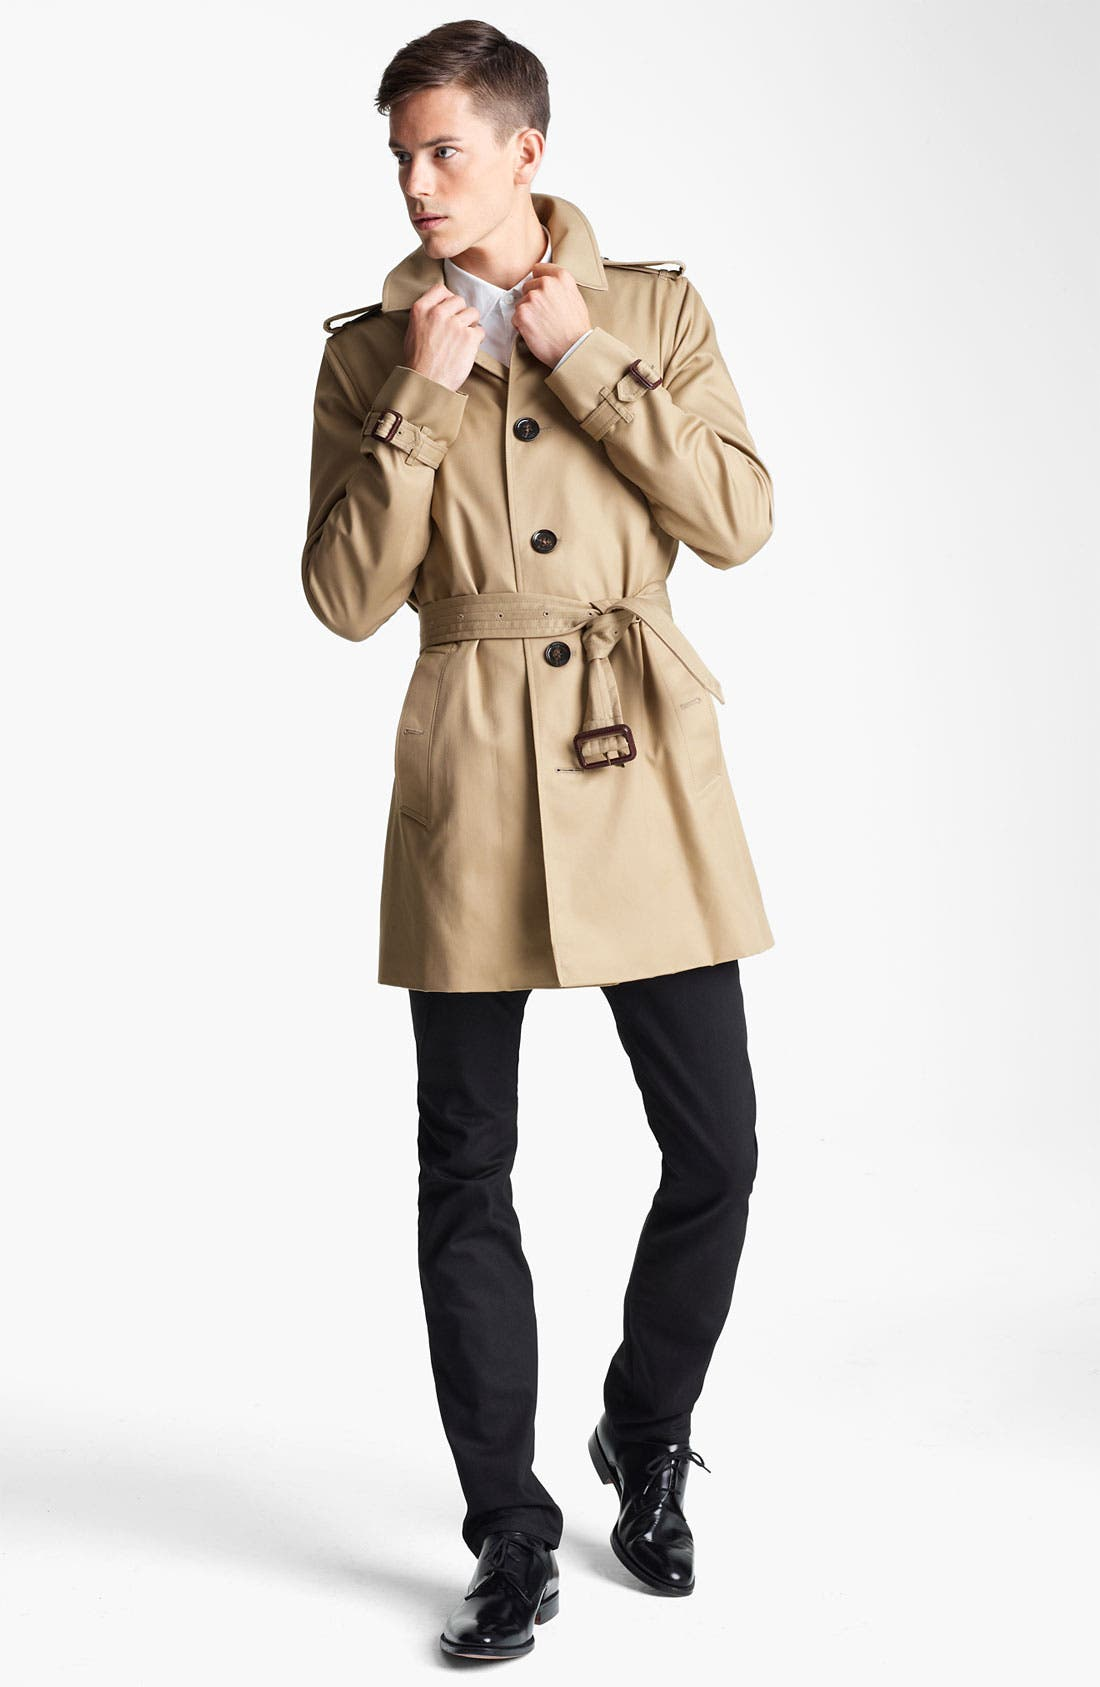 London 'Britton' Single Breasted Trench Coat,                             Alternate thumbnail 3, color,                             250